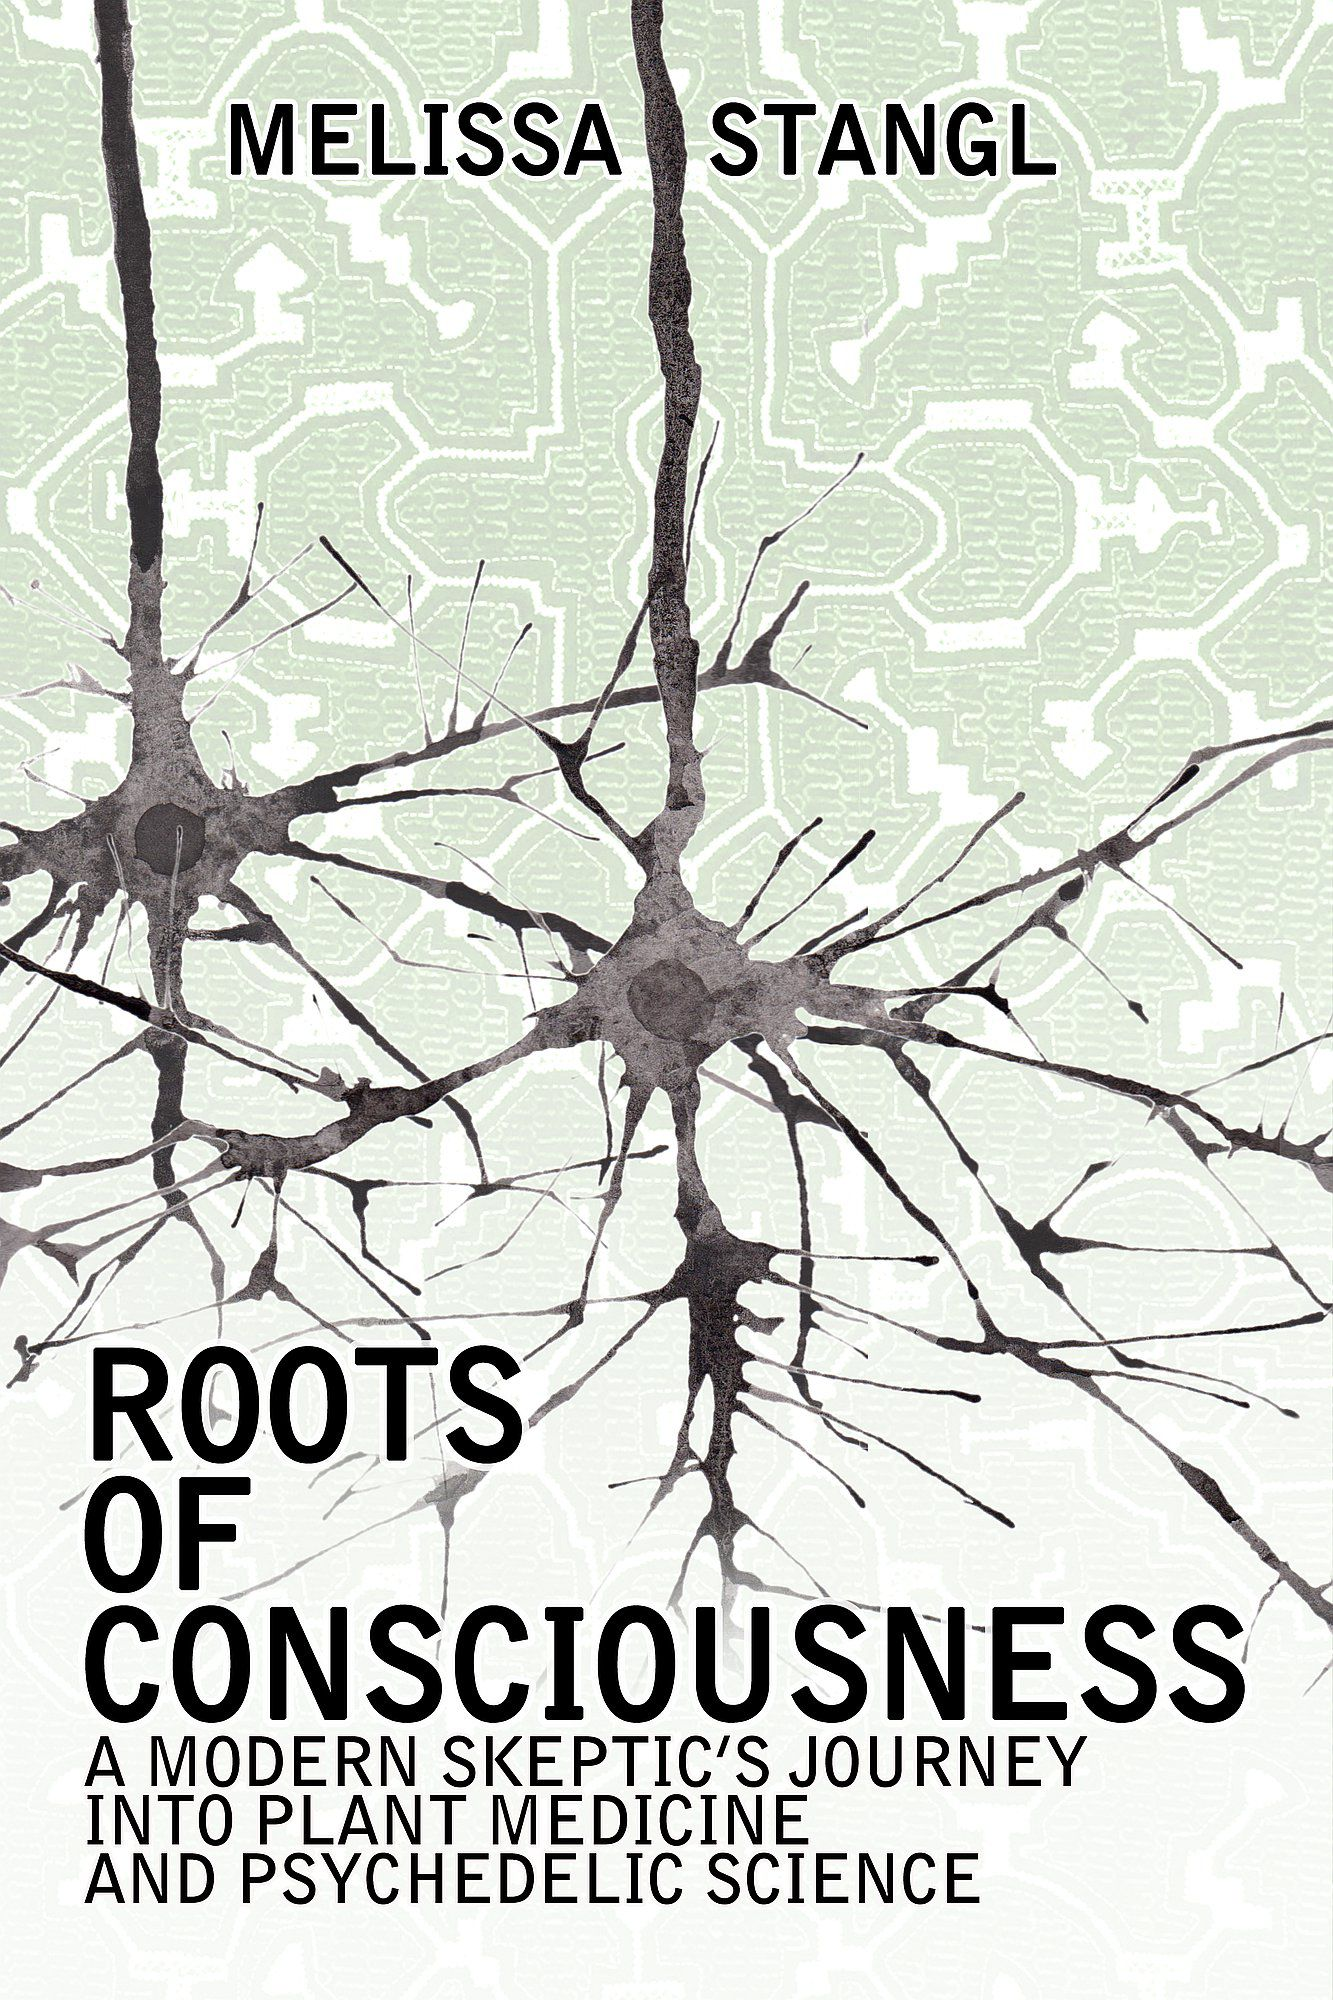 Roots of consciousness by melissa stangl publishizer pre orders fandeluxe Ebook collections